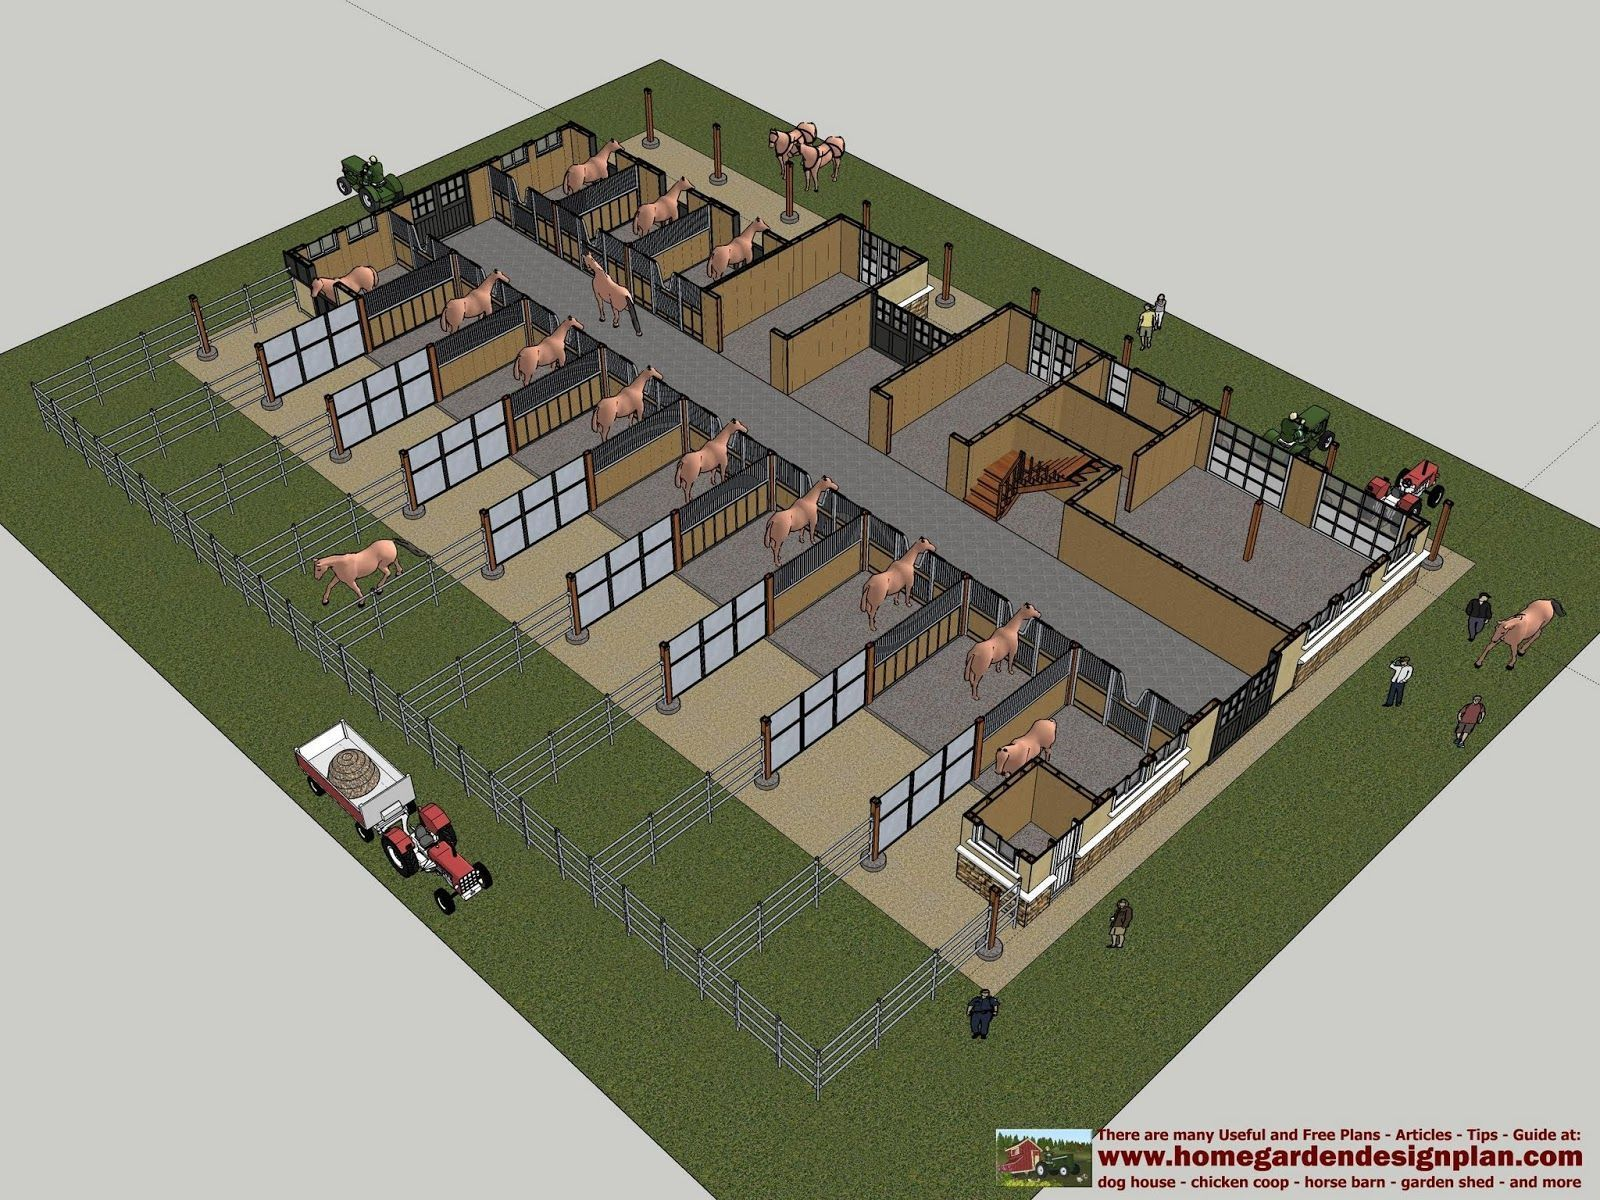 Horse Barn And Stable Designs Equine Stables Trilogy Barn Additional Rooms Included In This Stab Horse Barn Plans Horse Barn Designs Horse Barn Ideas Stables